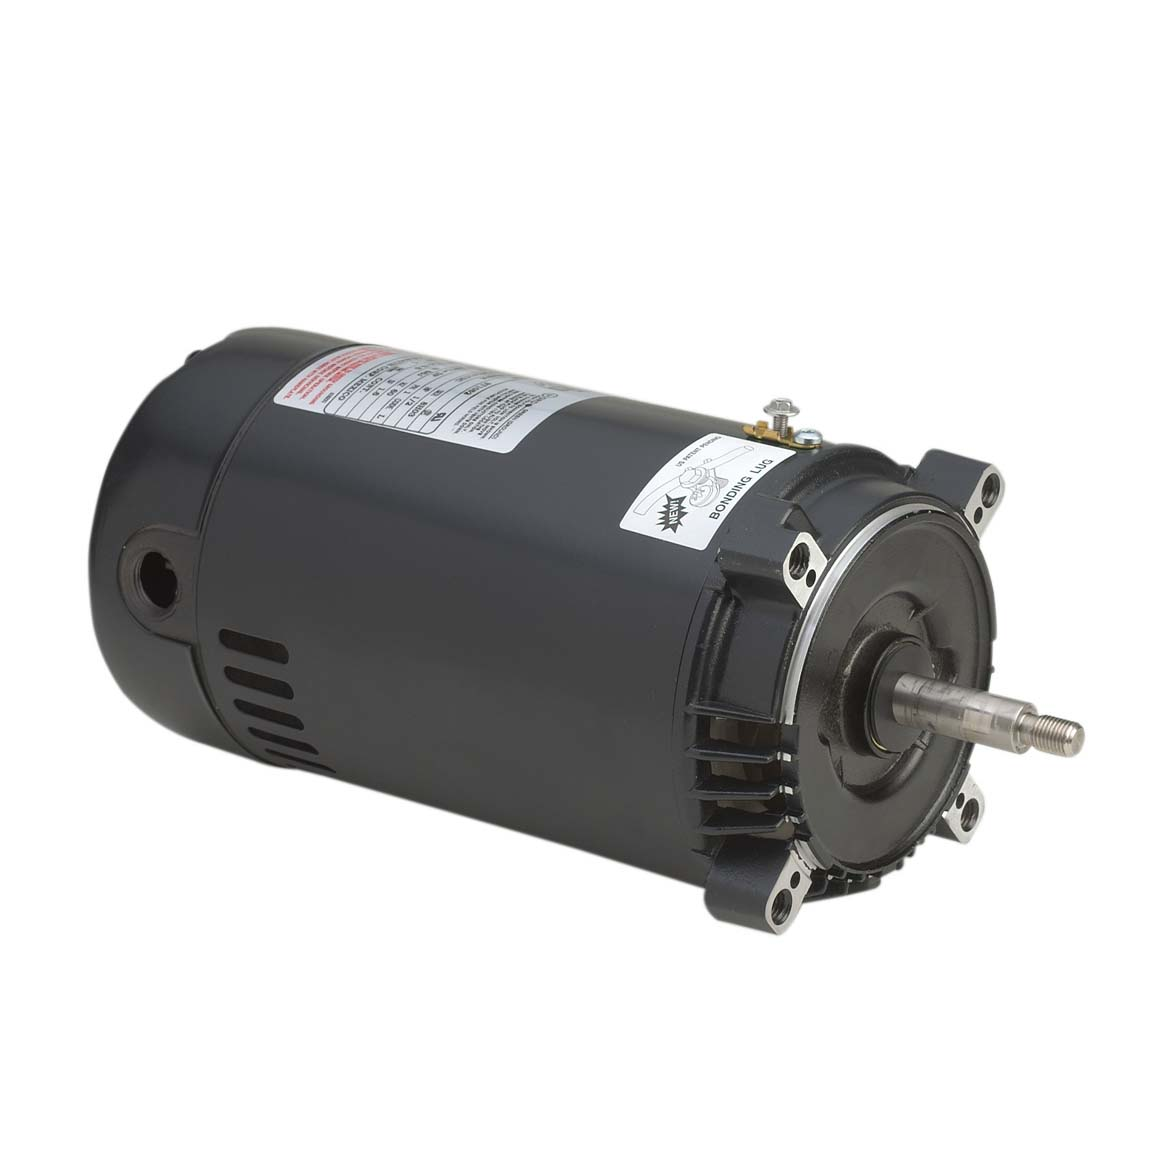 Regal Beloit 1 HP 3,450 RPM Stainless Steel Threaded Replacement Motor | ST1102